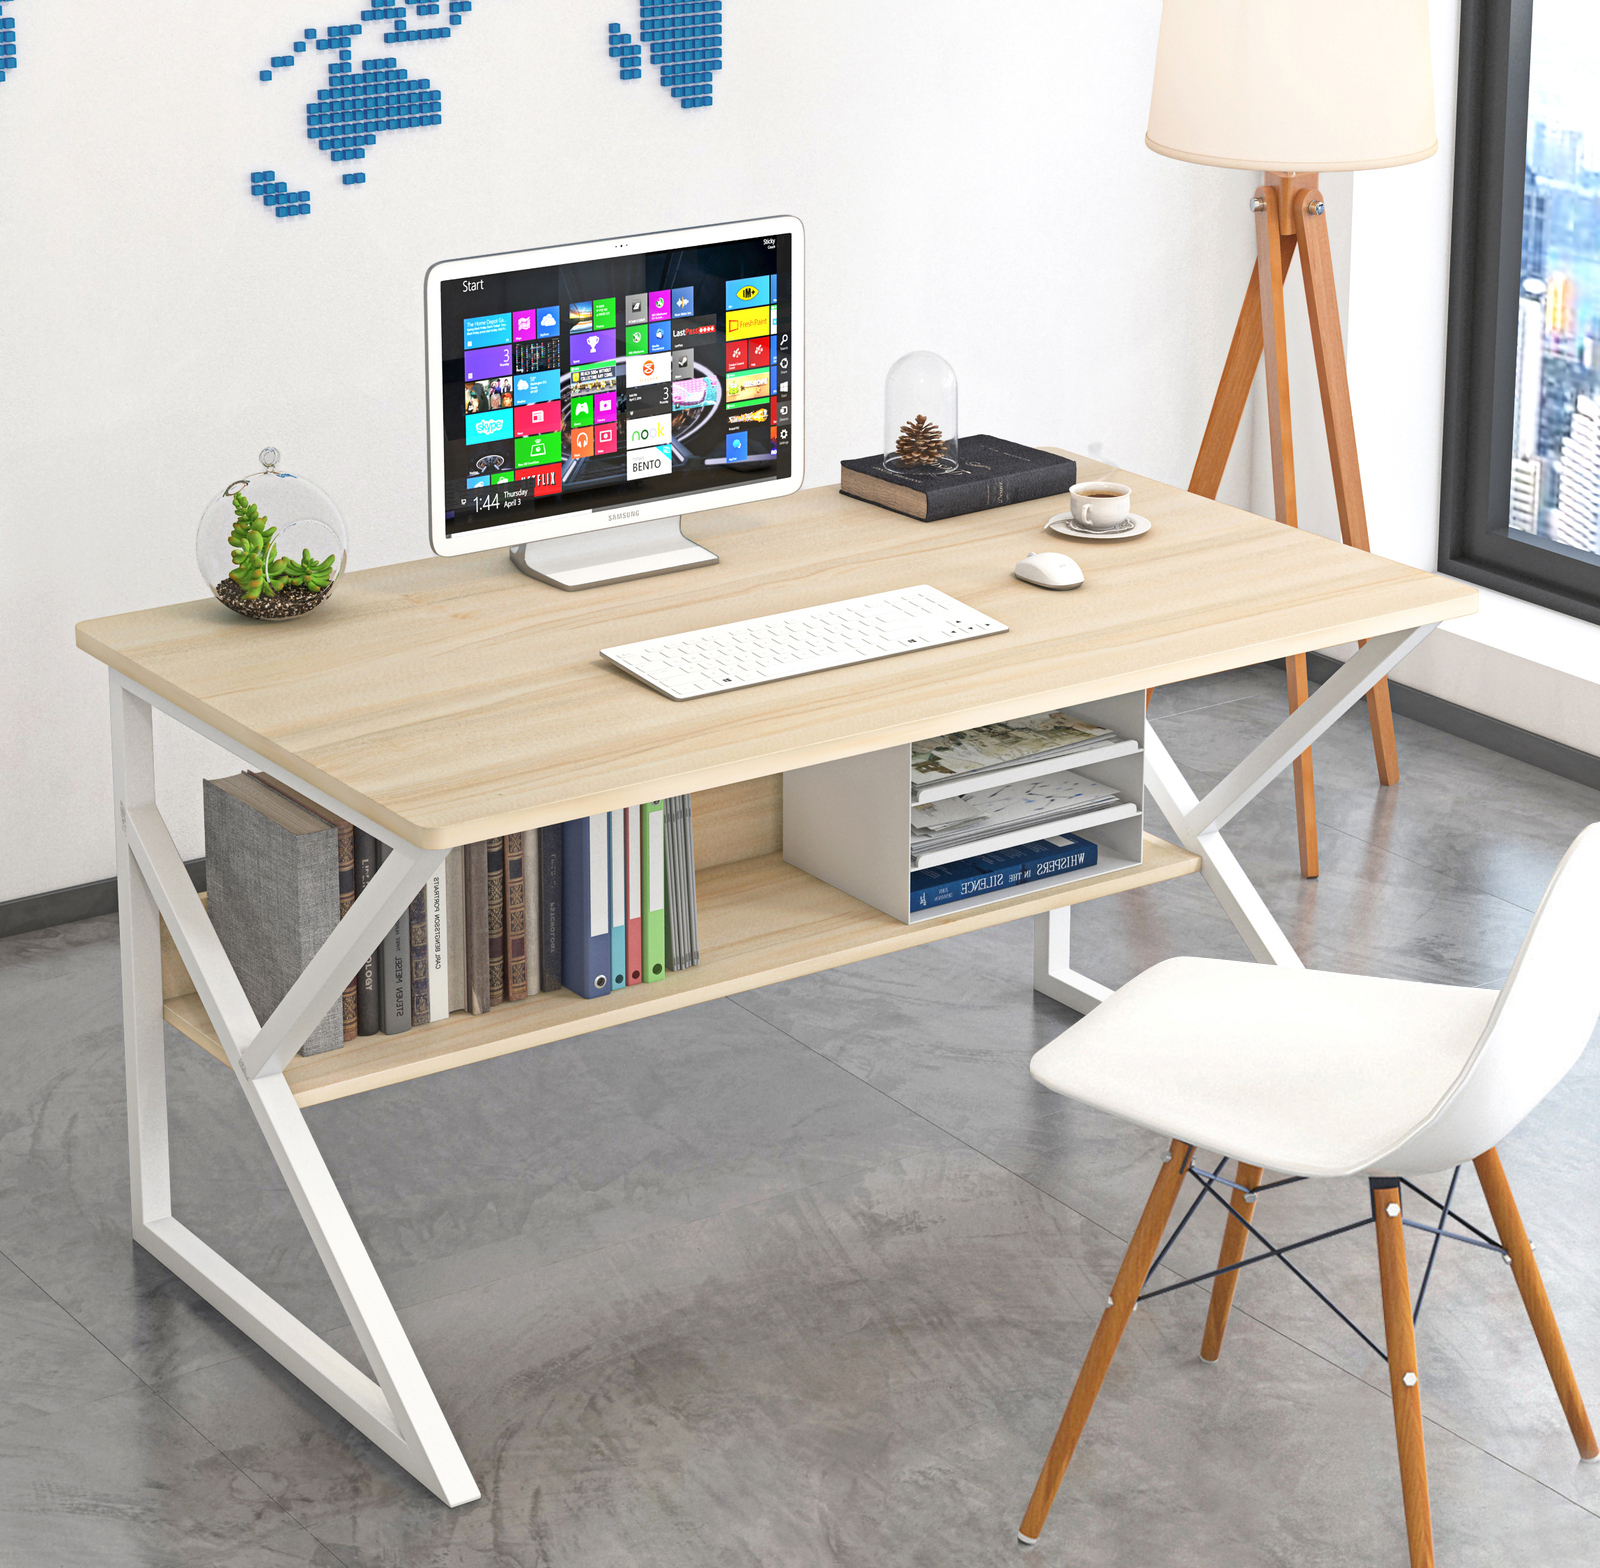 Kori Wood & Metal Computer Desk with Shelf (White) -100cm